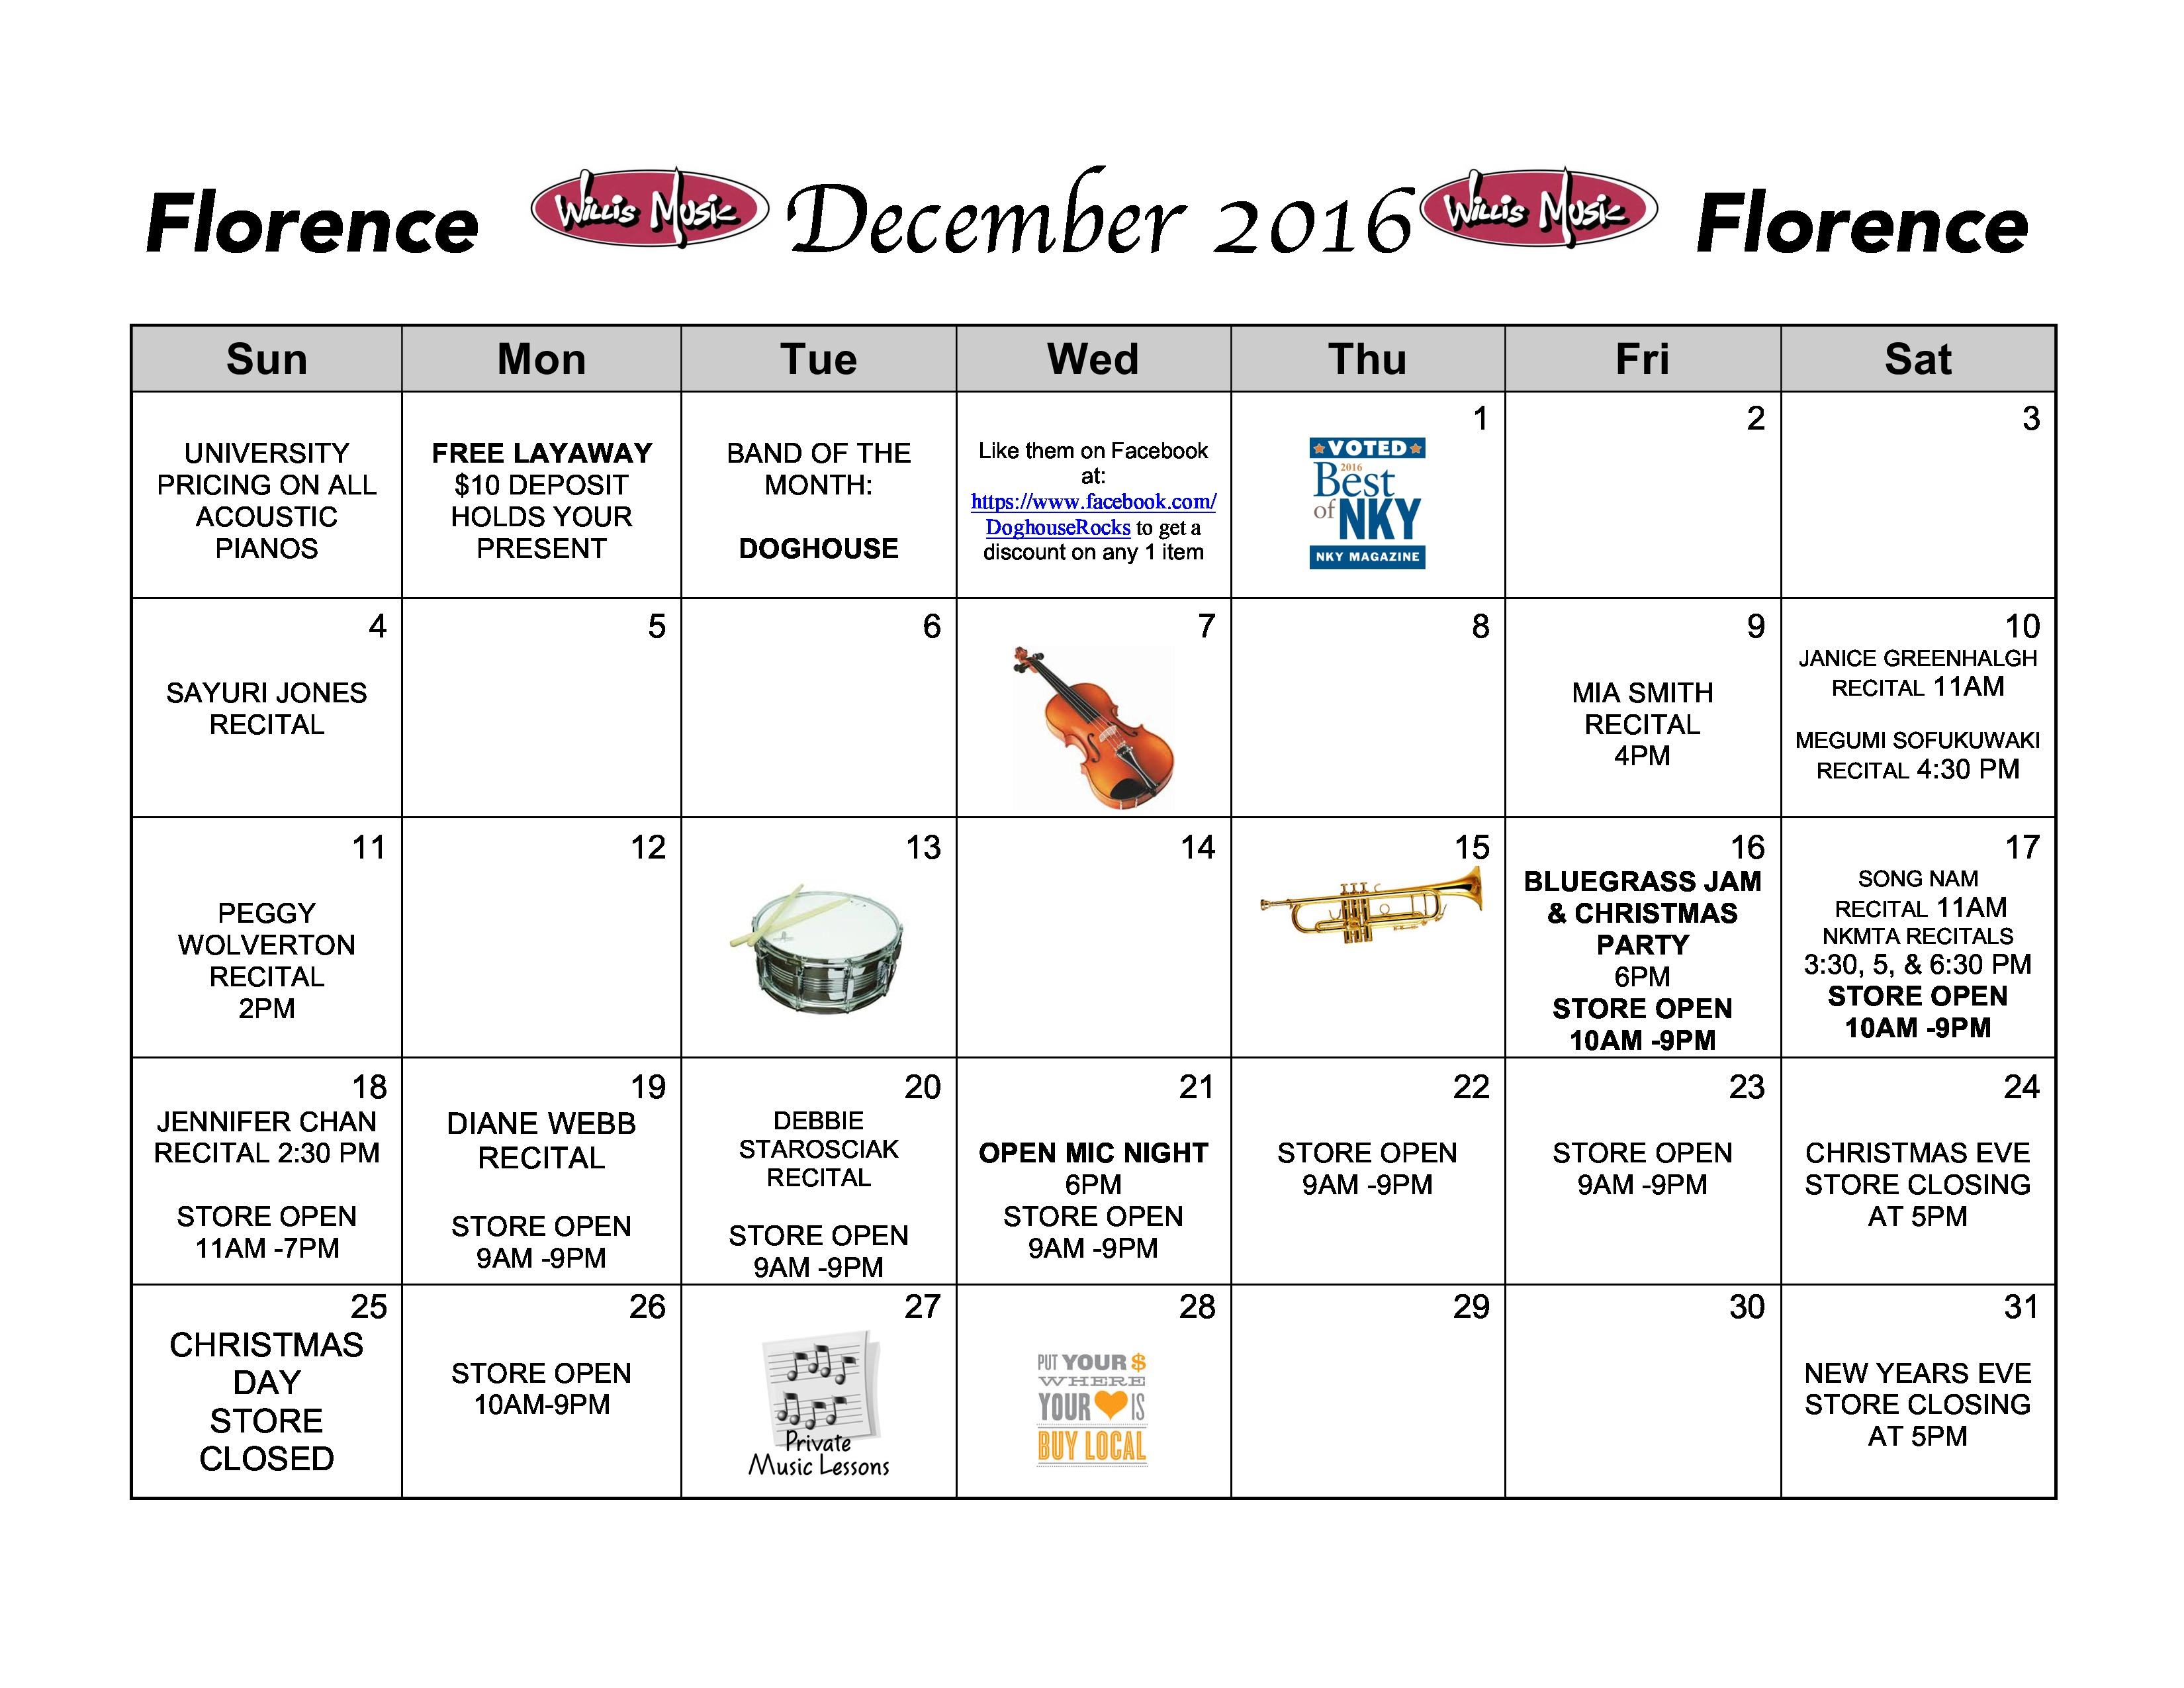 Florence December Calendar of Events - Willis Music